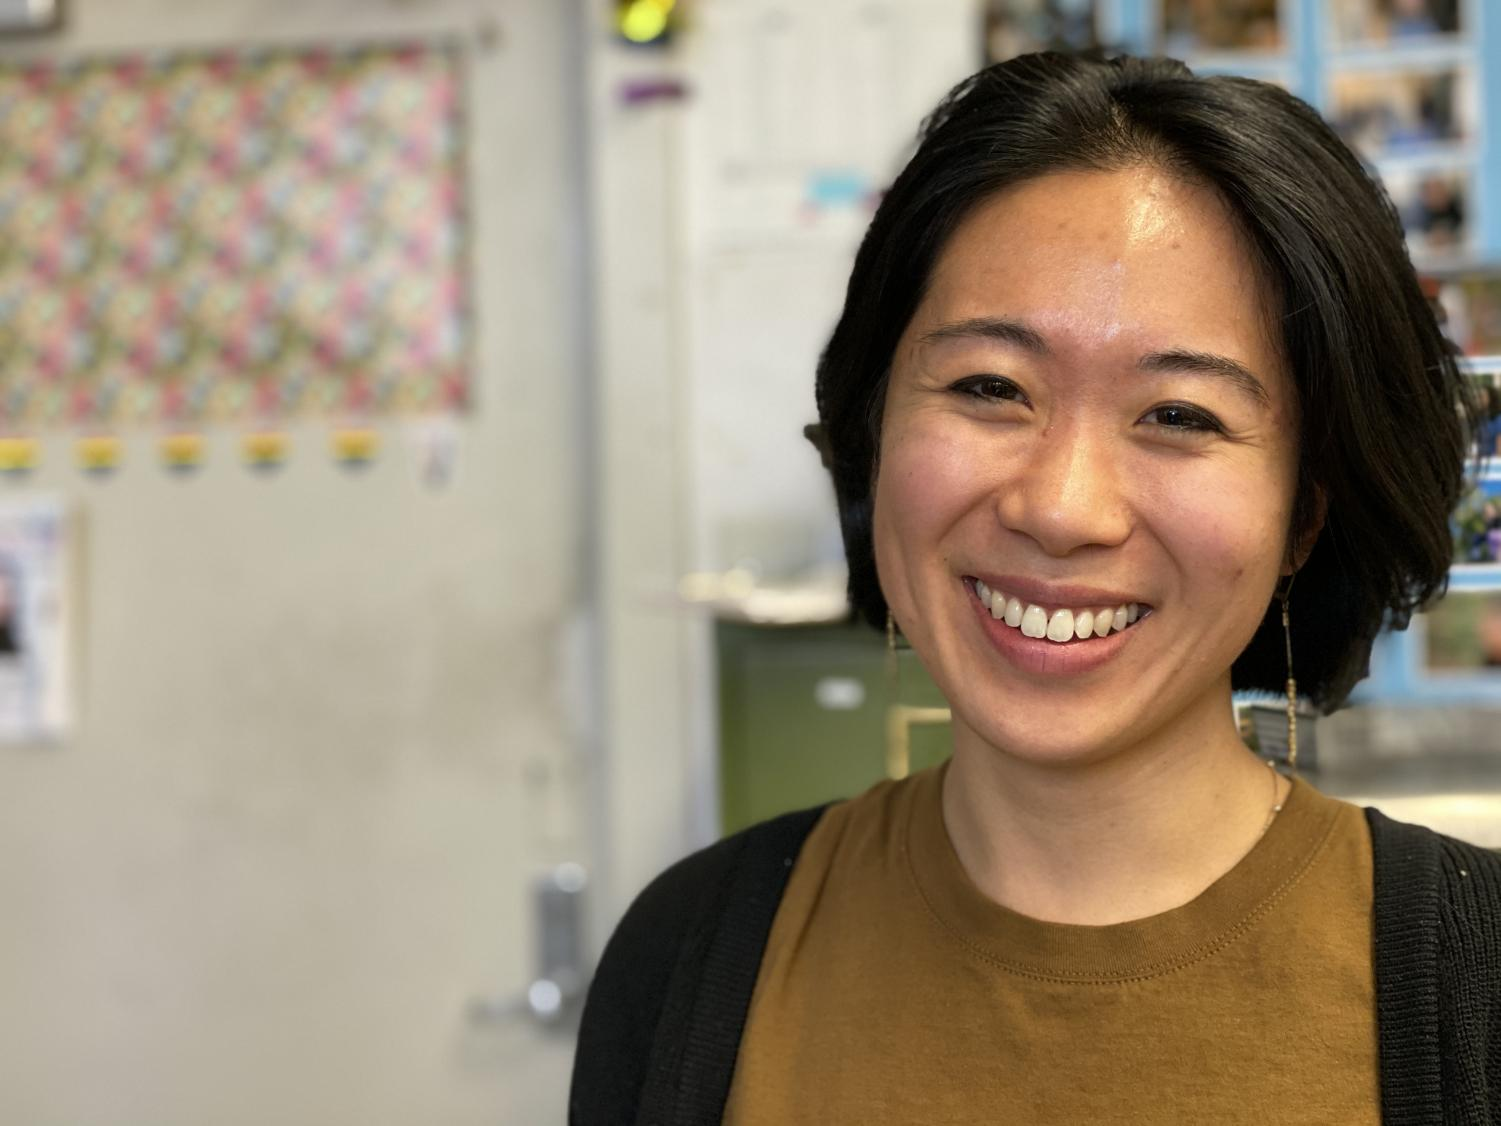 Carlina Duan visits Community High School to teach and share poetry. She has been practicing poetry since she was a freshman at Pioneer High School.